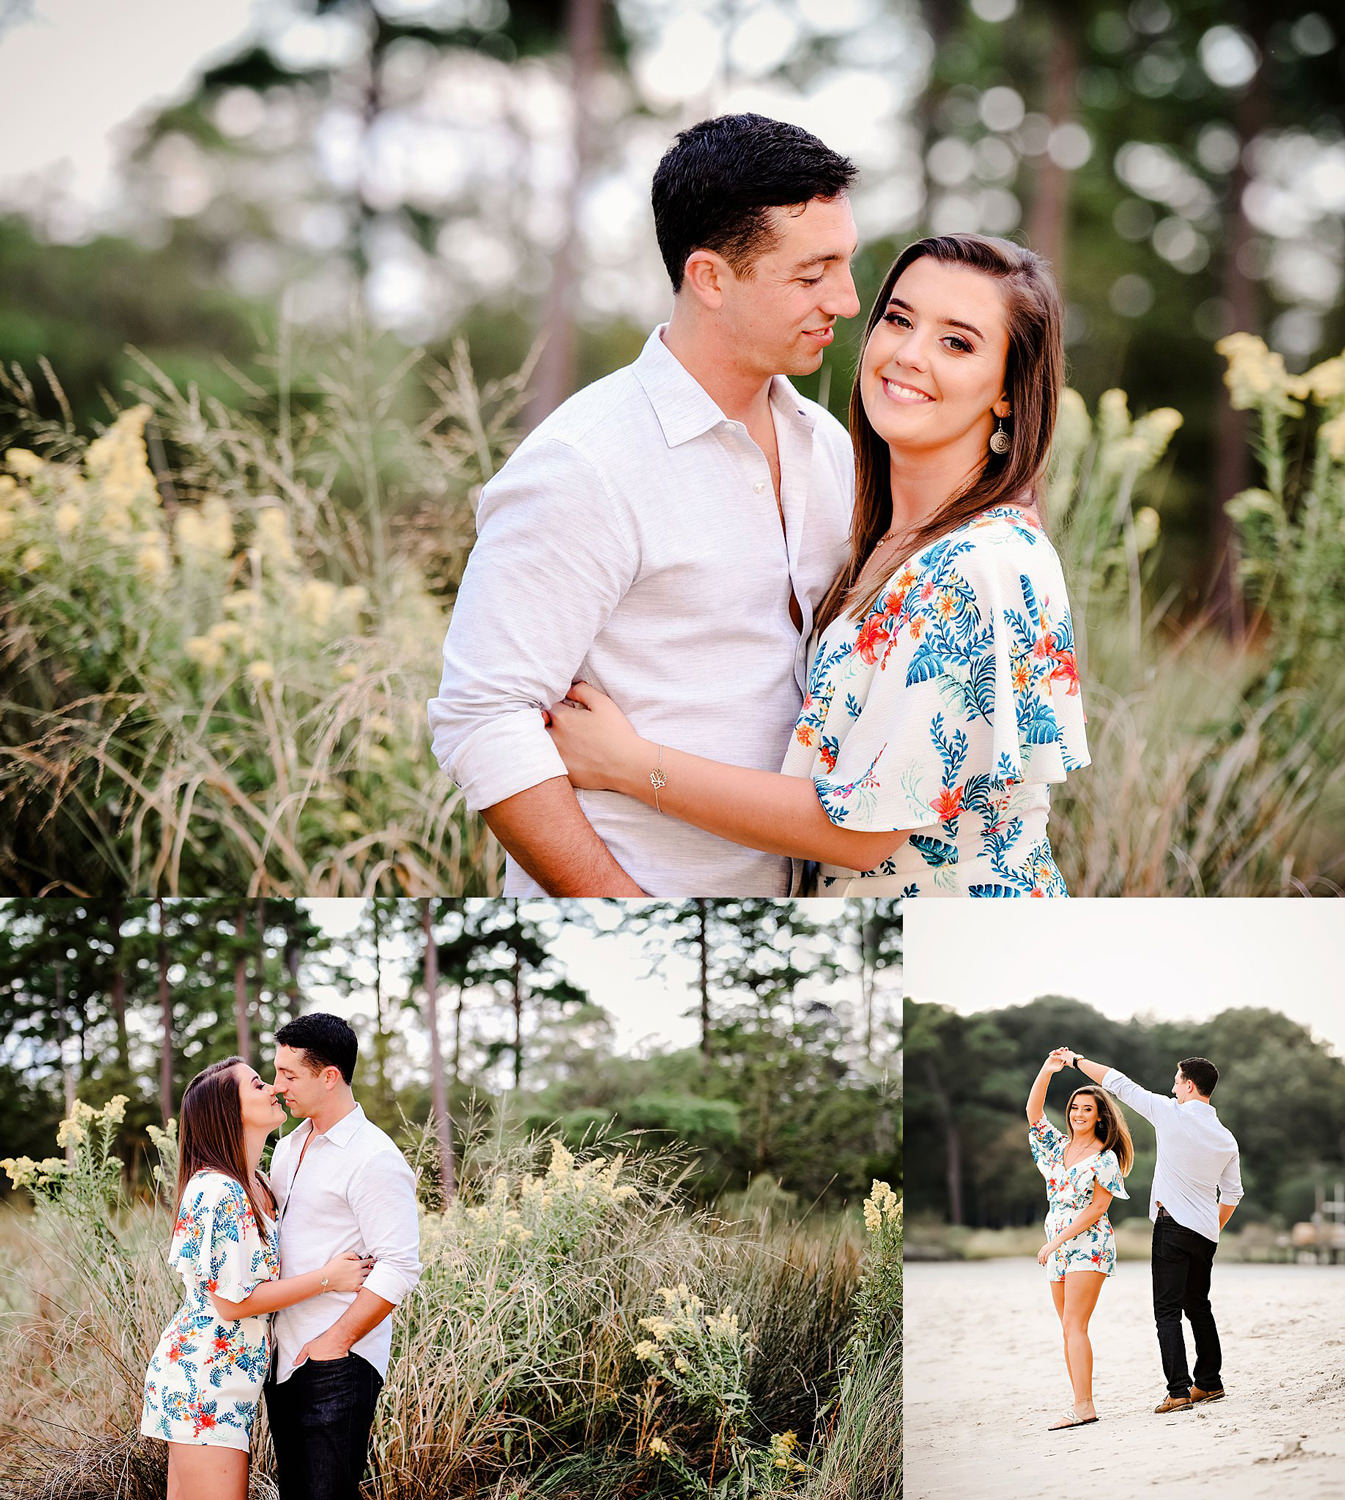 lifestyle-engagement-pictures-at-first-landing-virginia-beach-photographer-melissa-bliss-photography.jpg